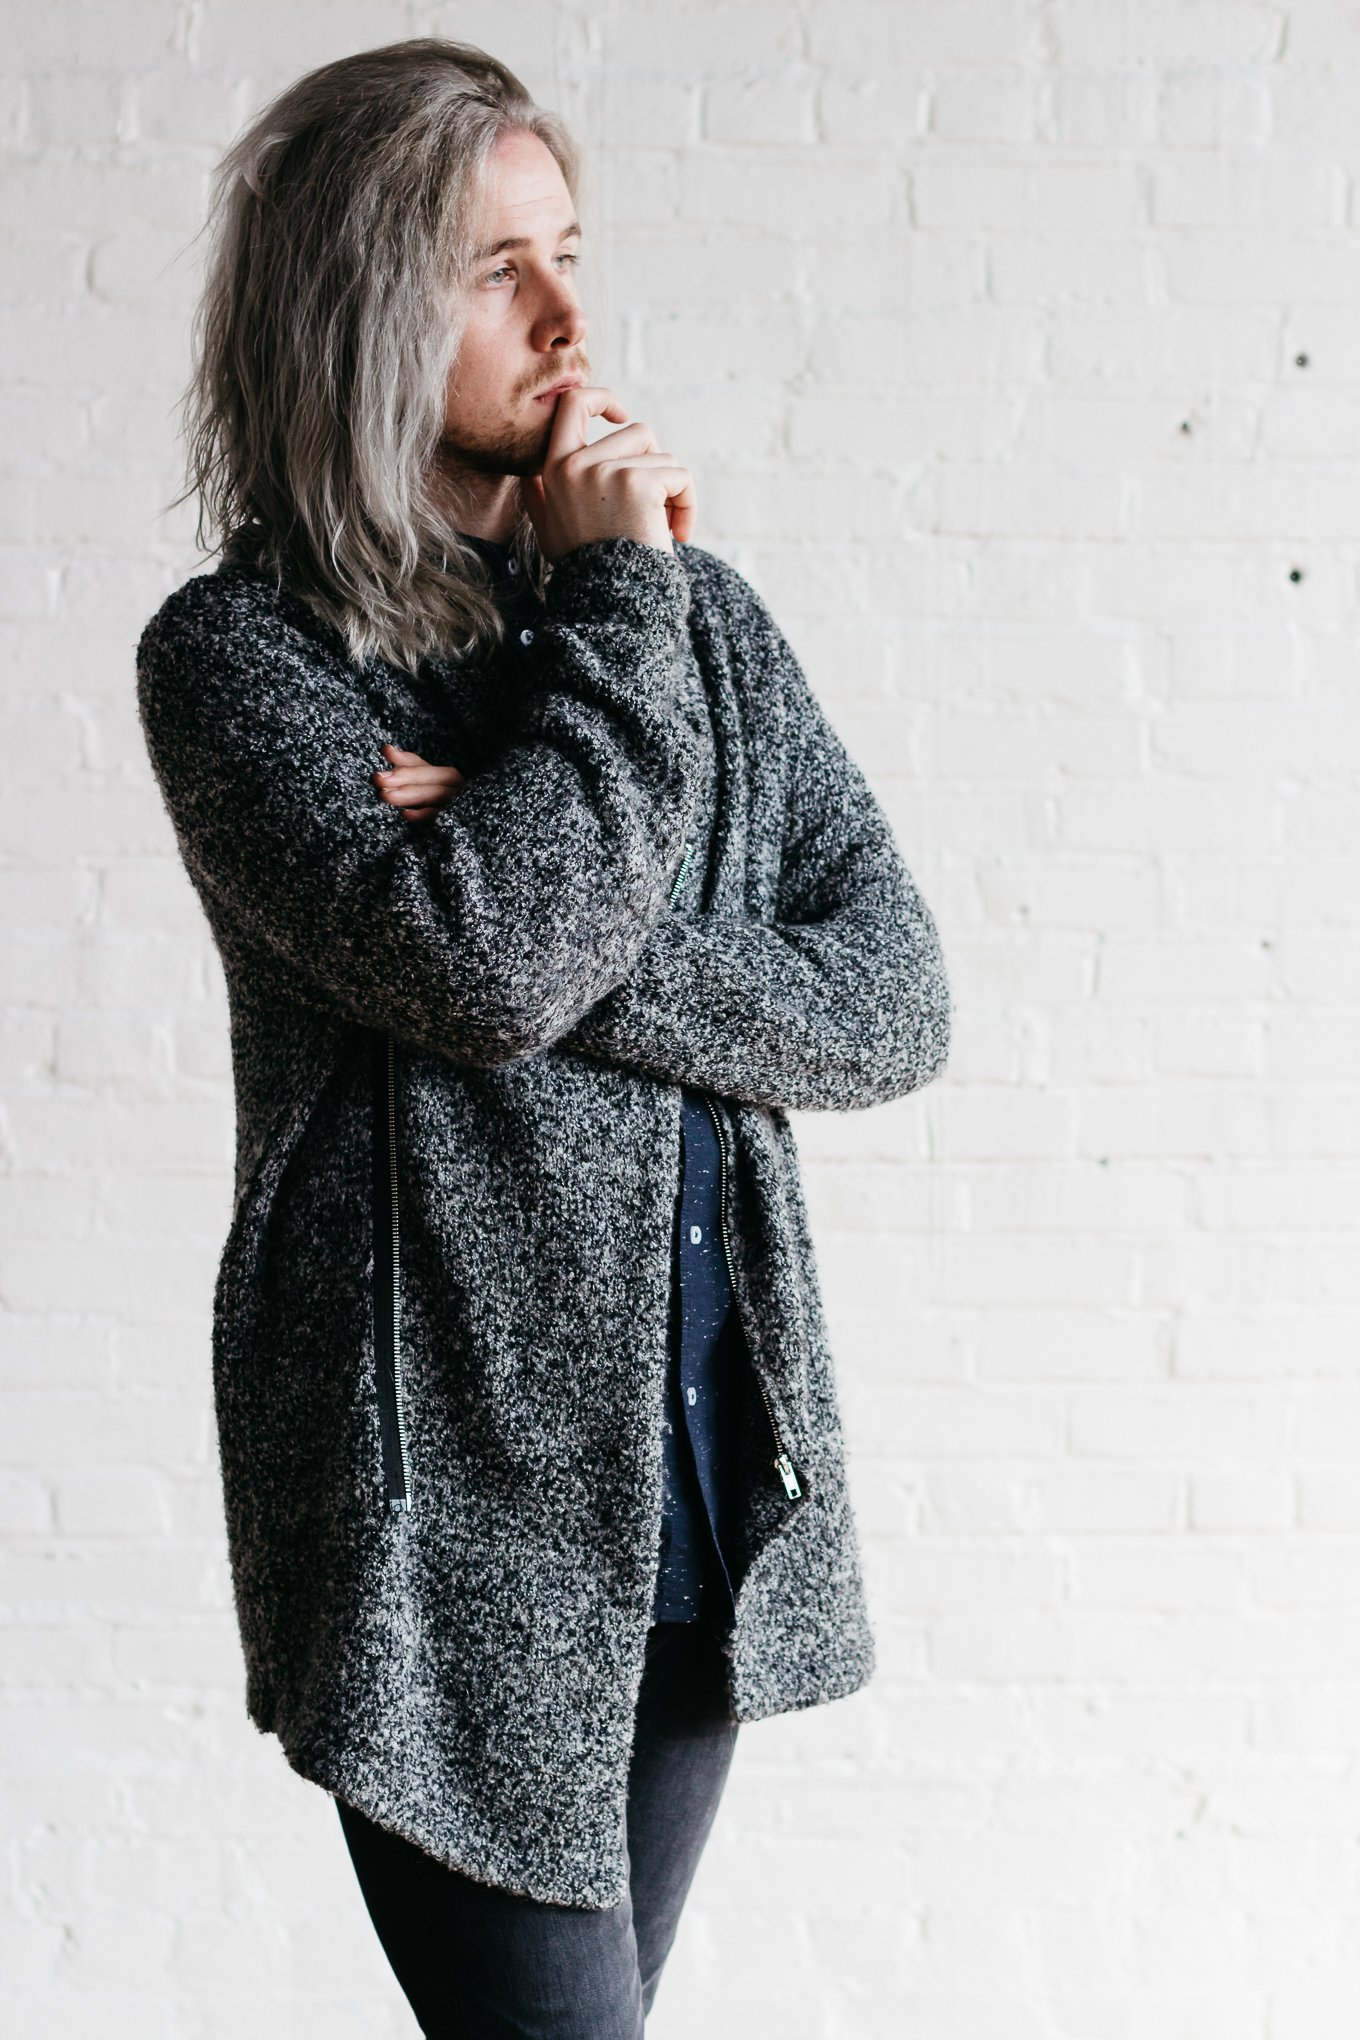 mens fashion blogger, mens style blogger, mens monochrome outfits